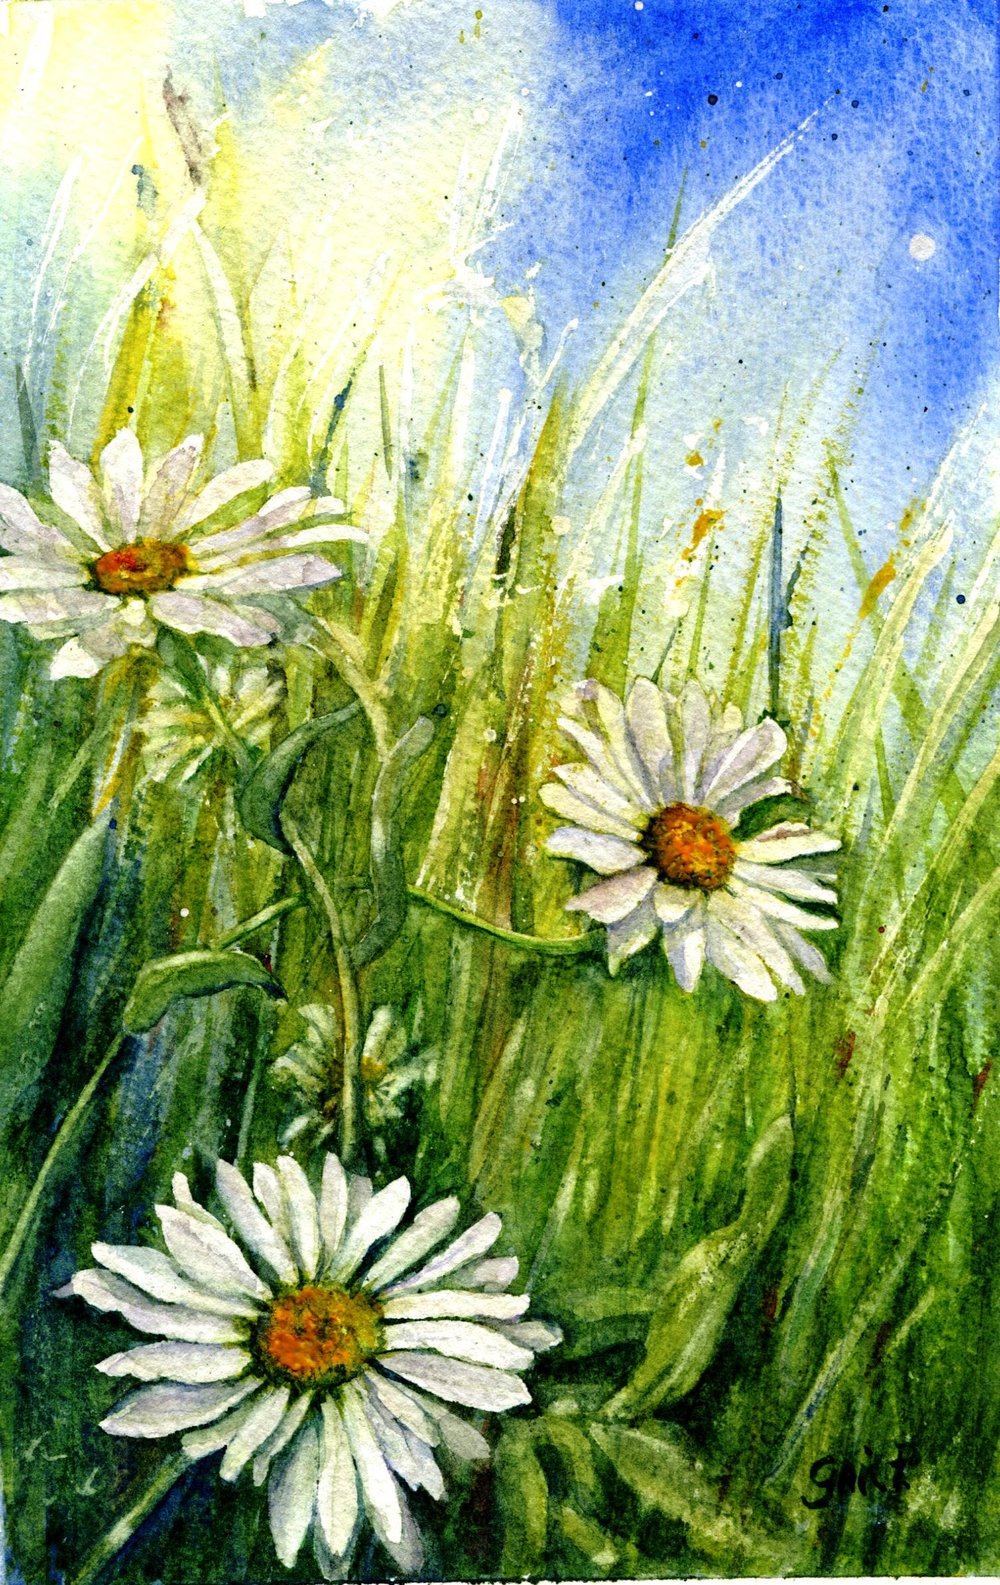 28d Gail Peckham, Daisies in the Wind, Watercolour on paper